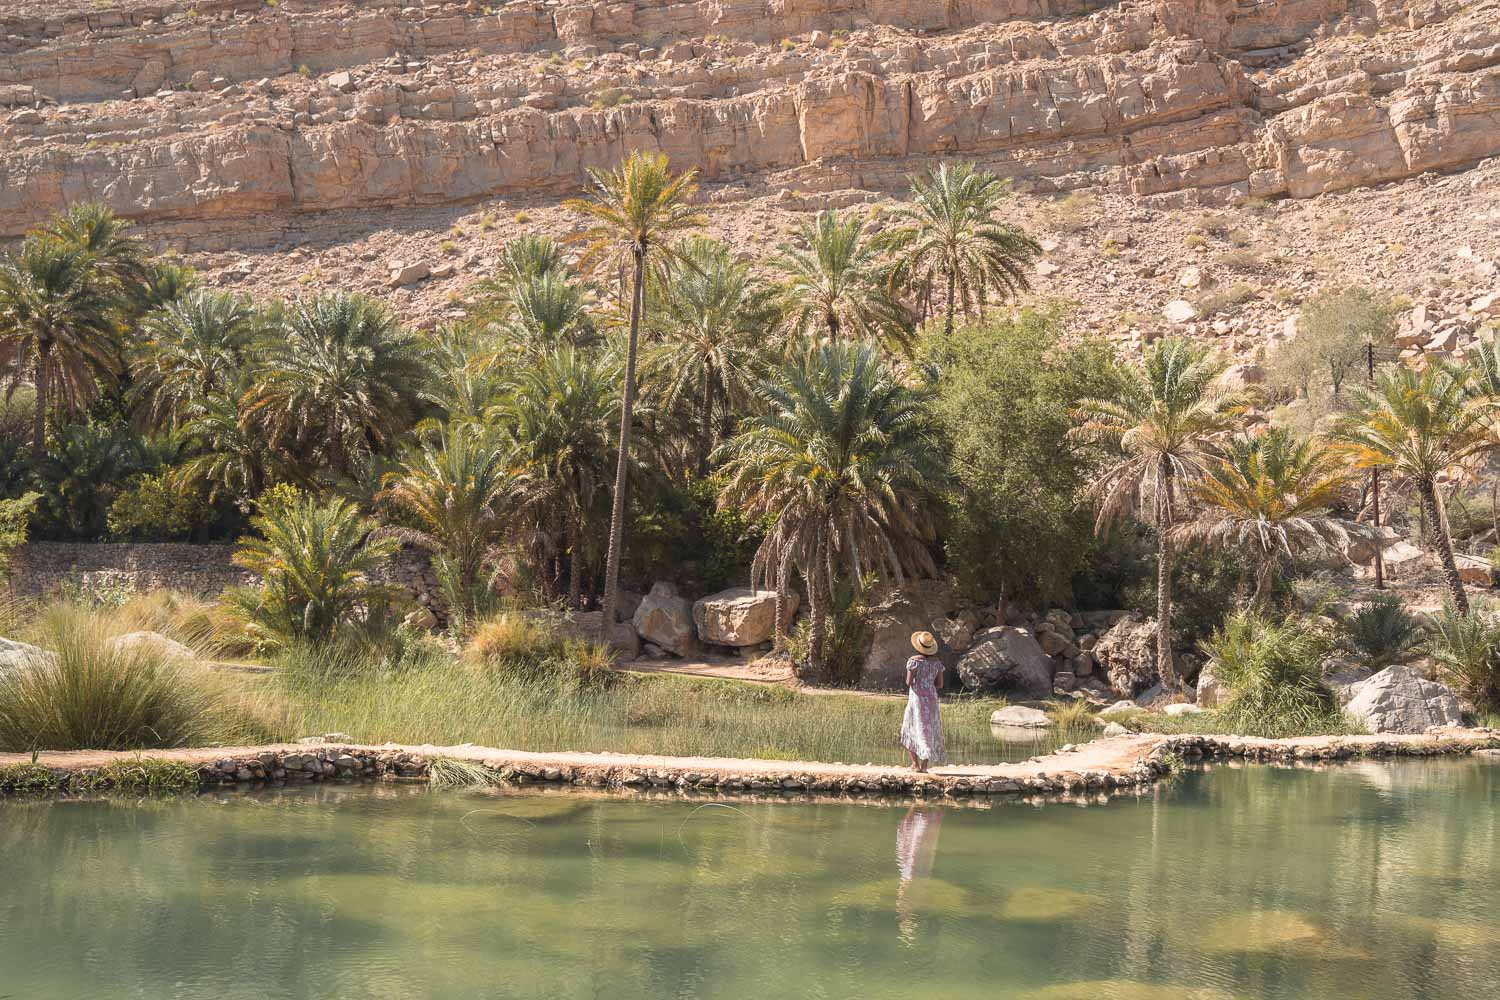 What-to-do-in-Sur-Oman-Wadi-Bani-Khalid-Elen-Pradera.jpg